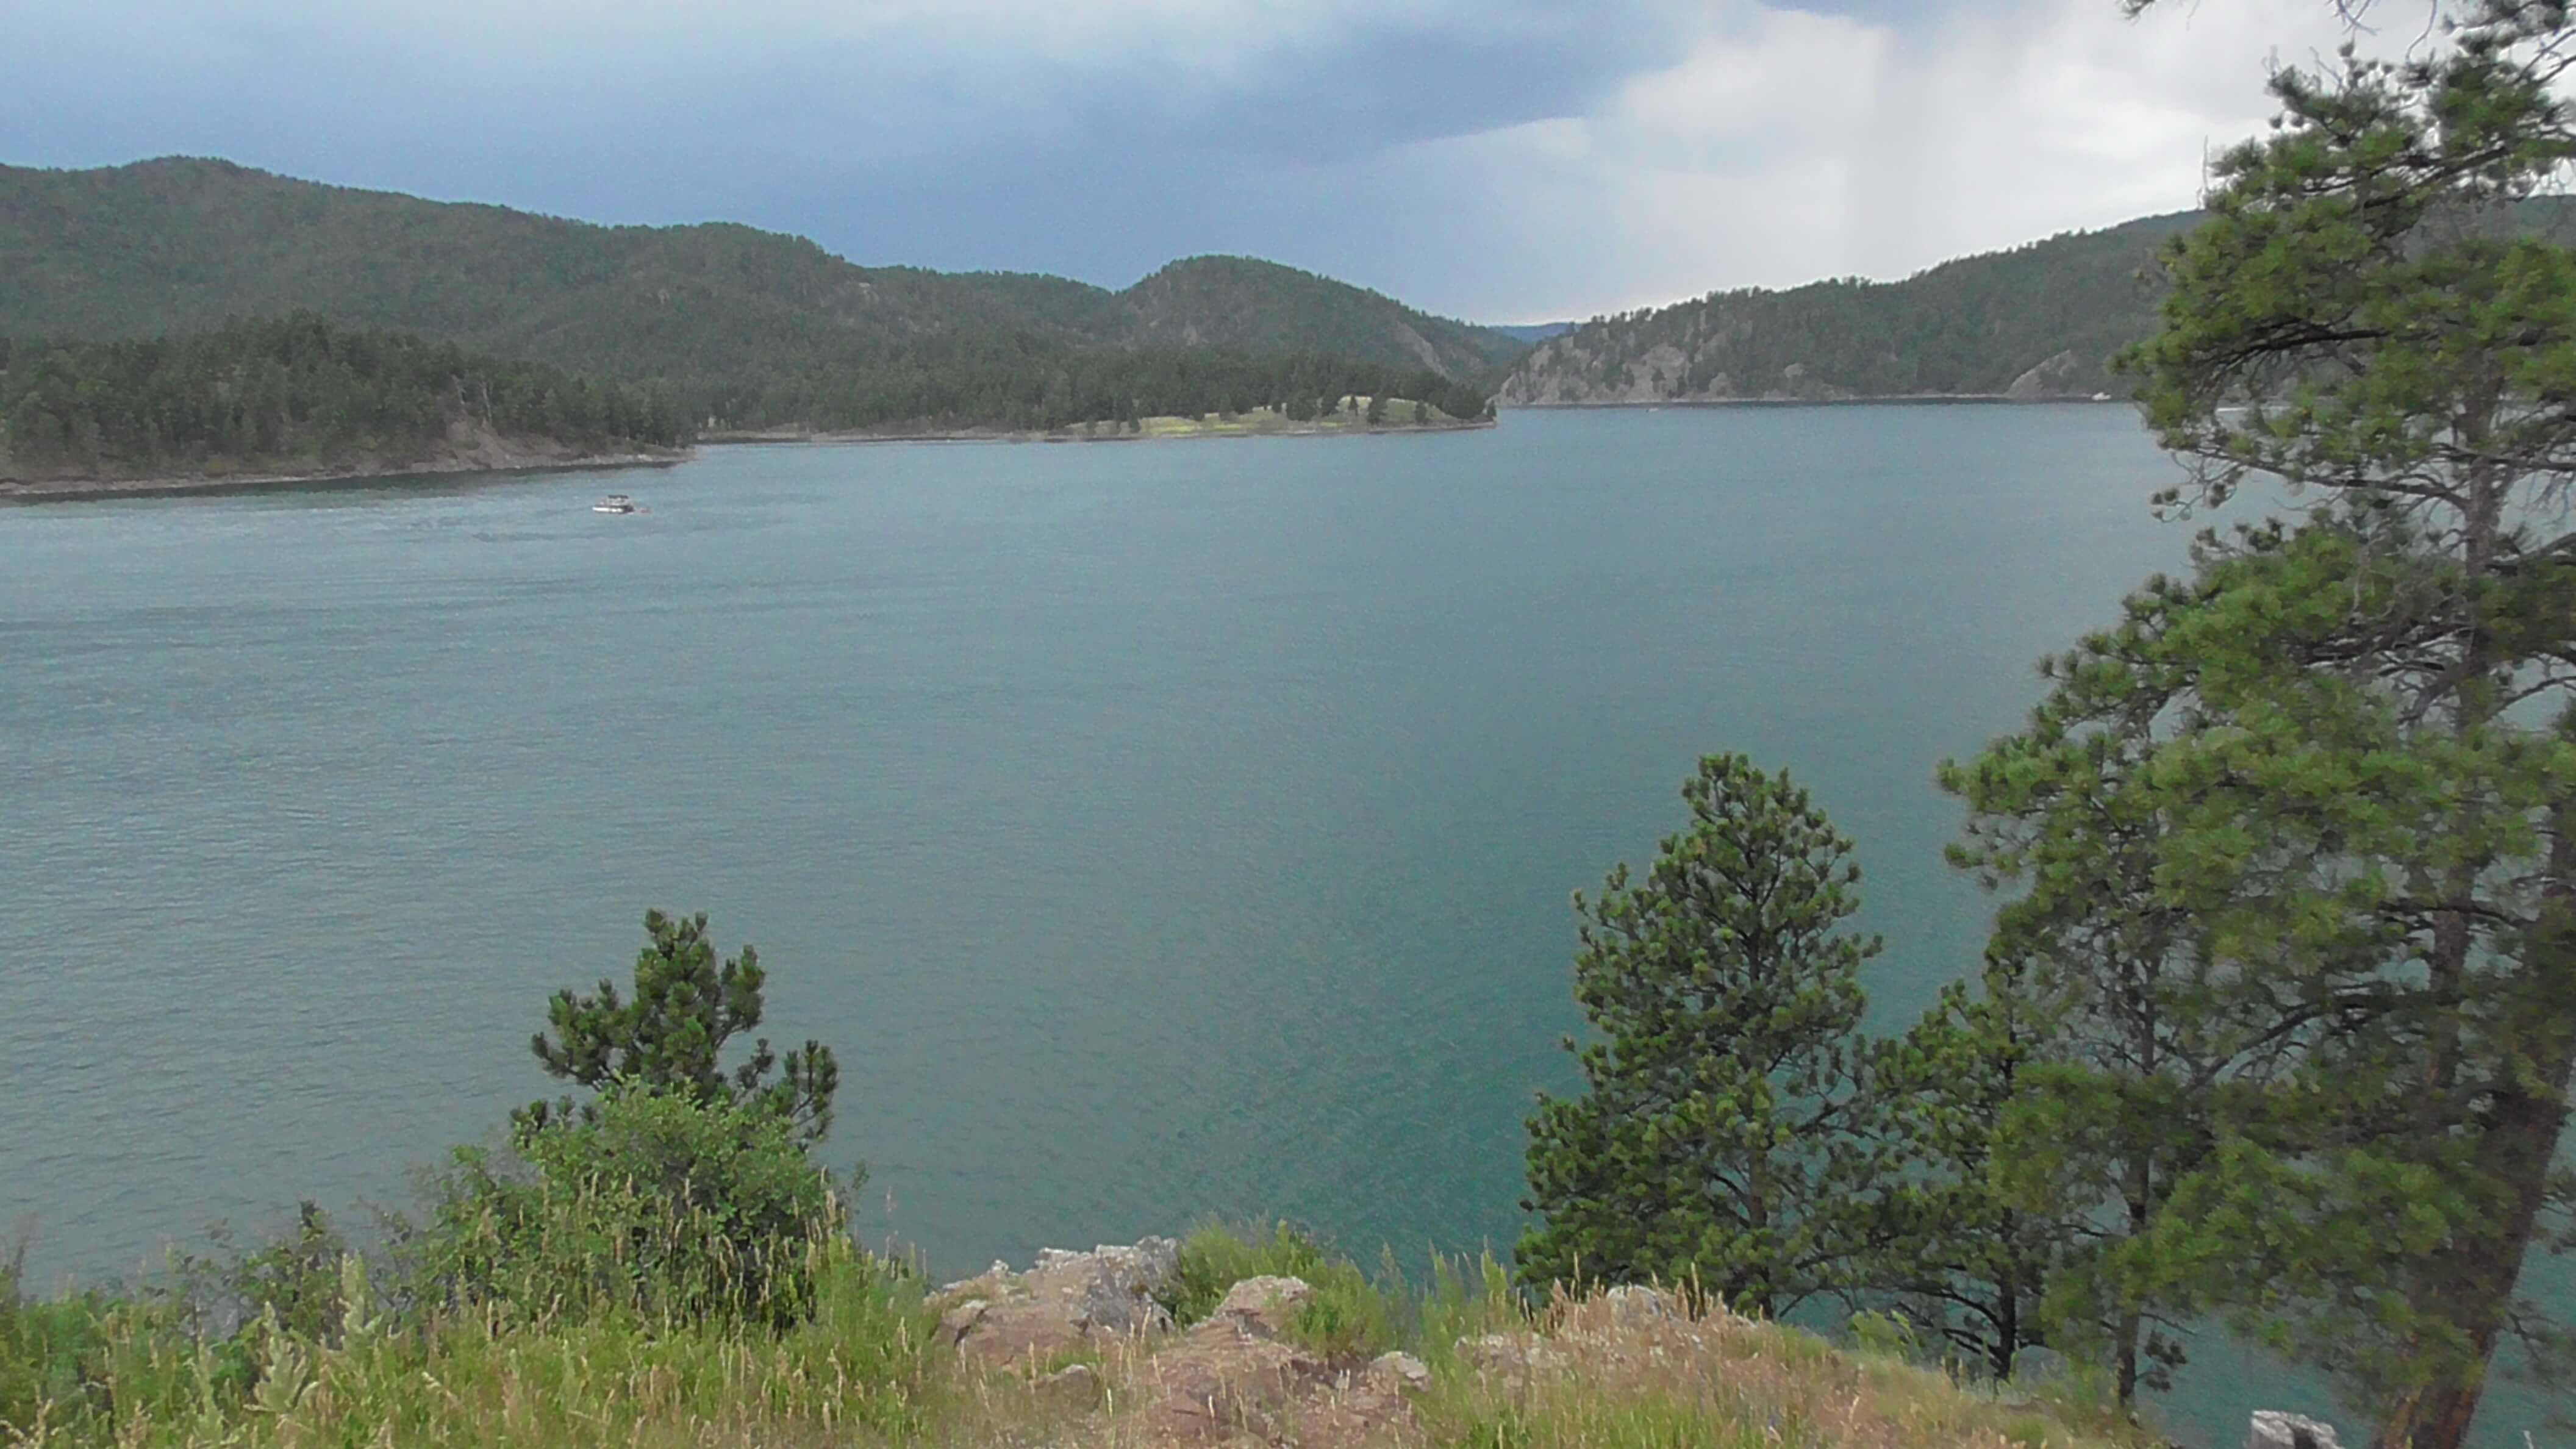 Lake Pactola on the way back to Custer